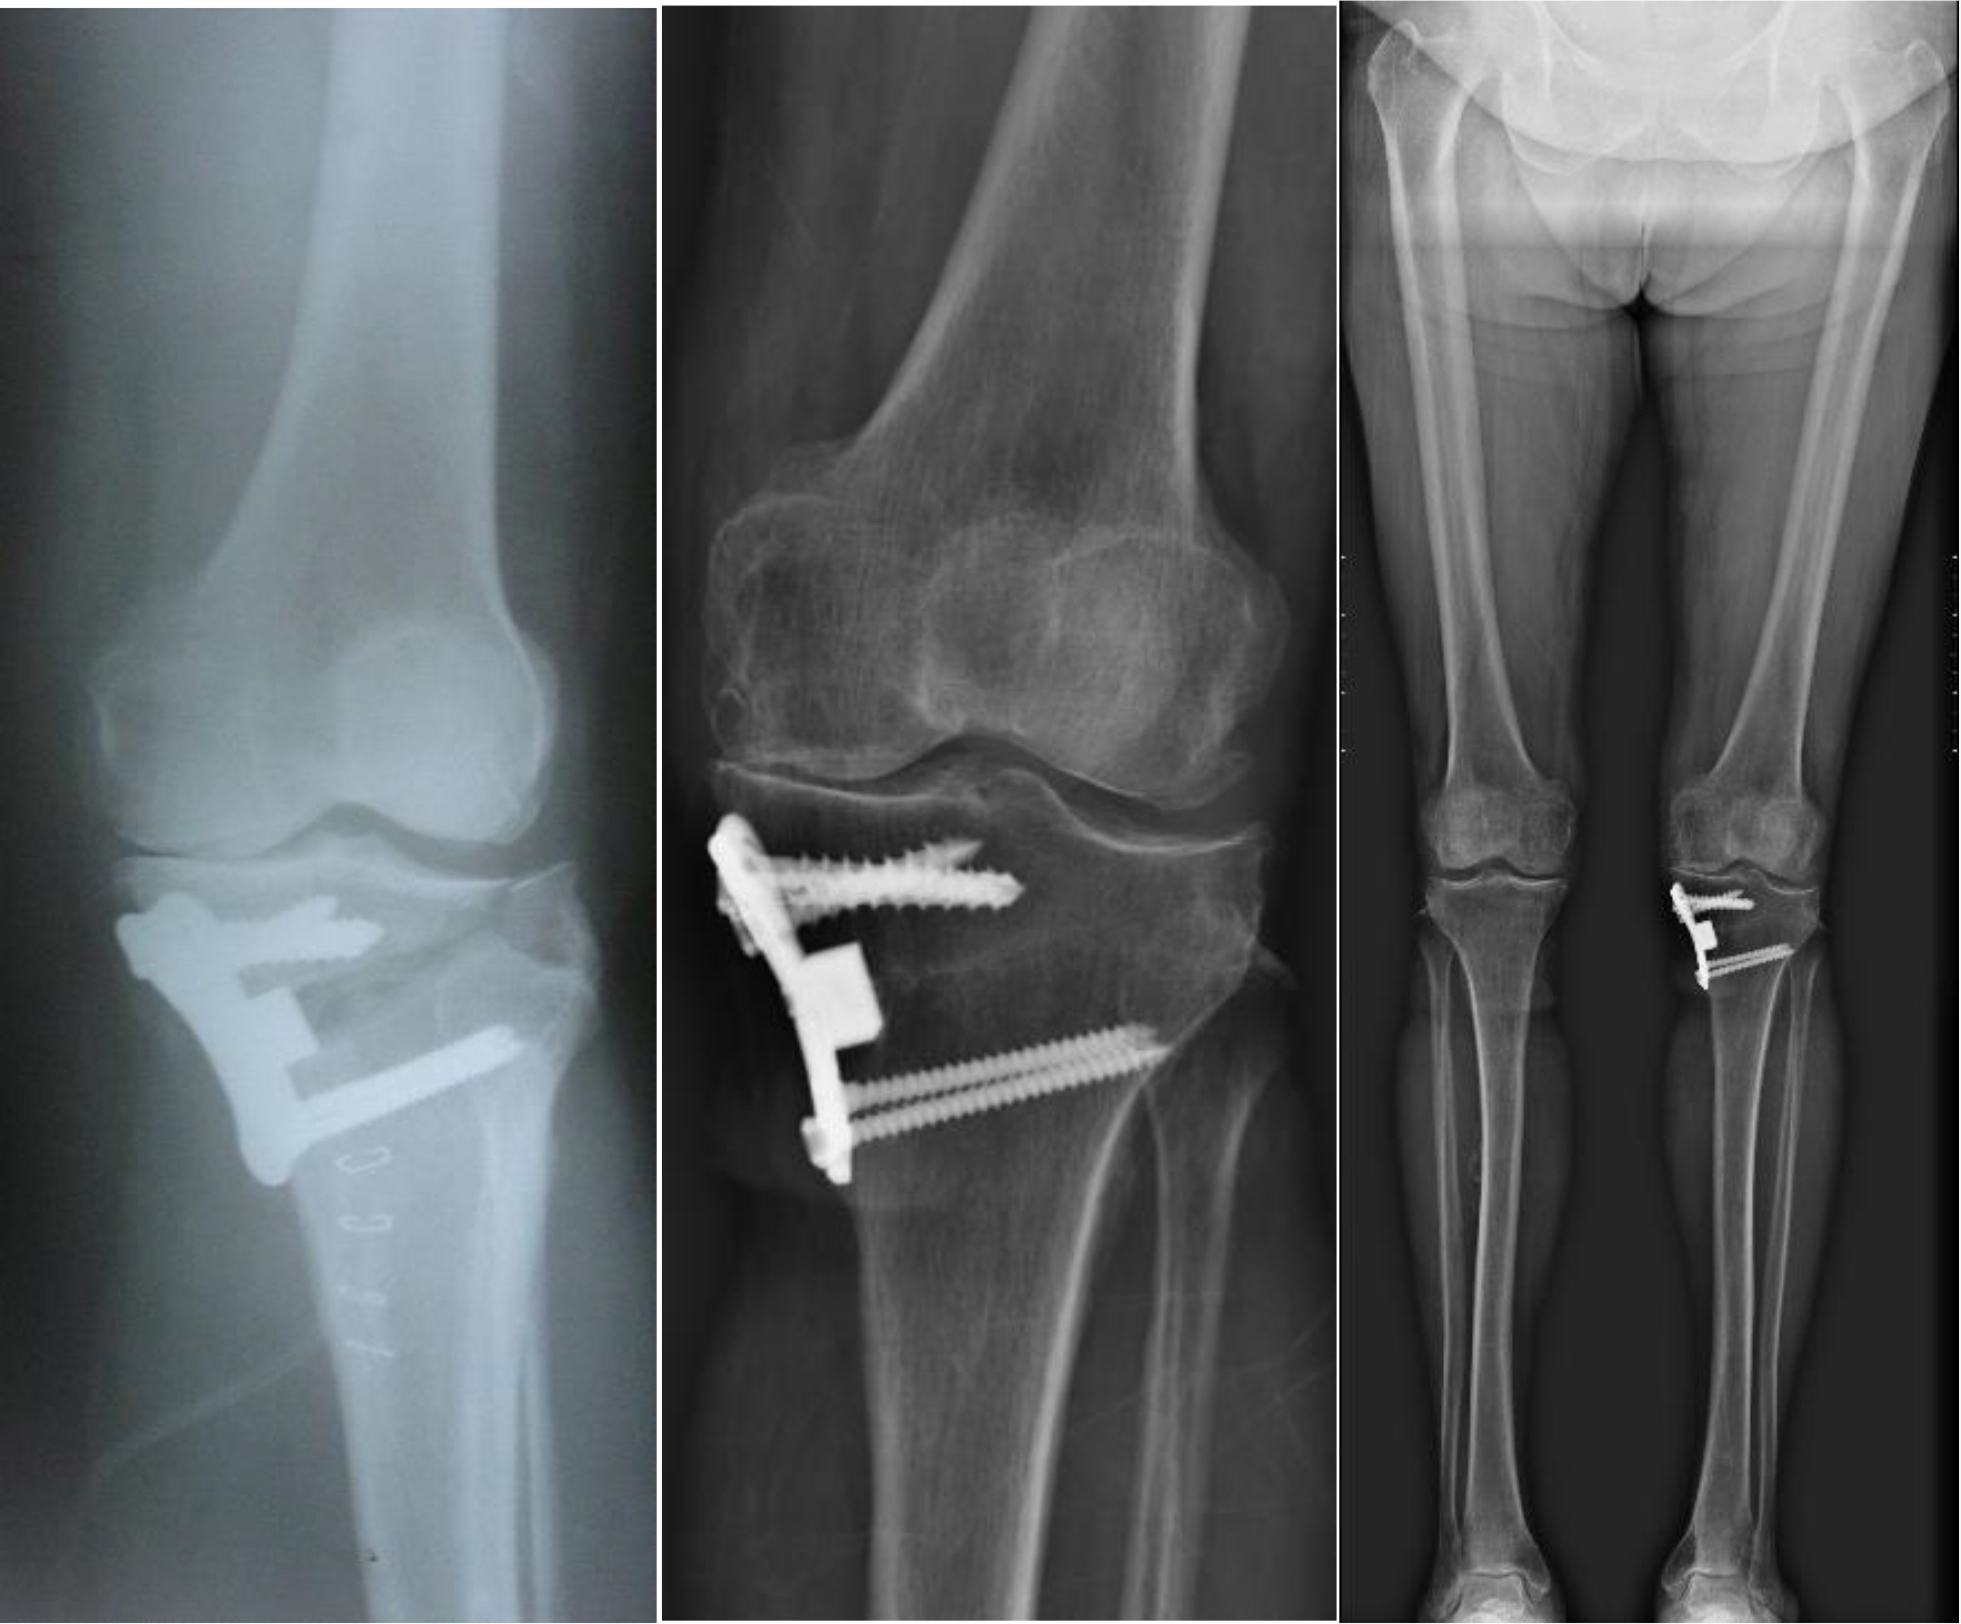 Radiographs and orthoroentgenograph of a patient with non-displaced LPF and conservative follow-up, early postoperative radiograph (Left), 13 years postoperative radiograph (Middle) and orthoroentgenograph (Right).